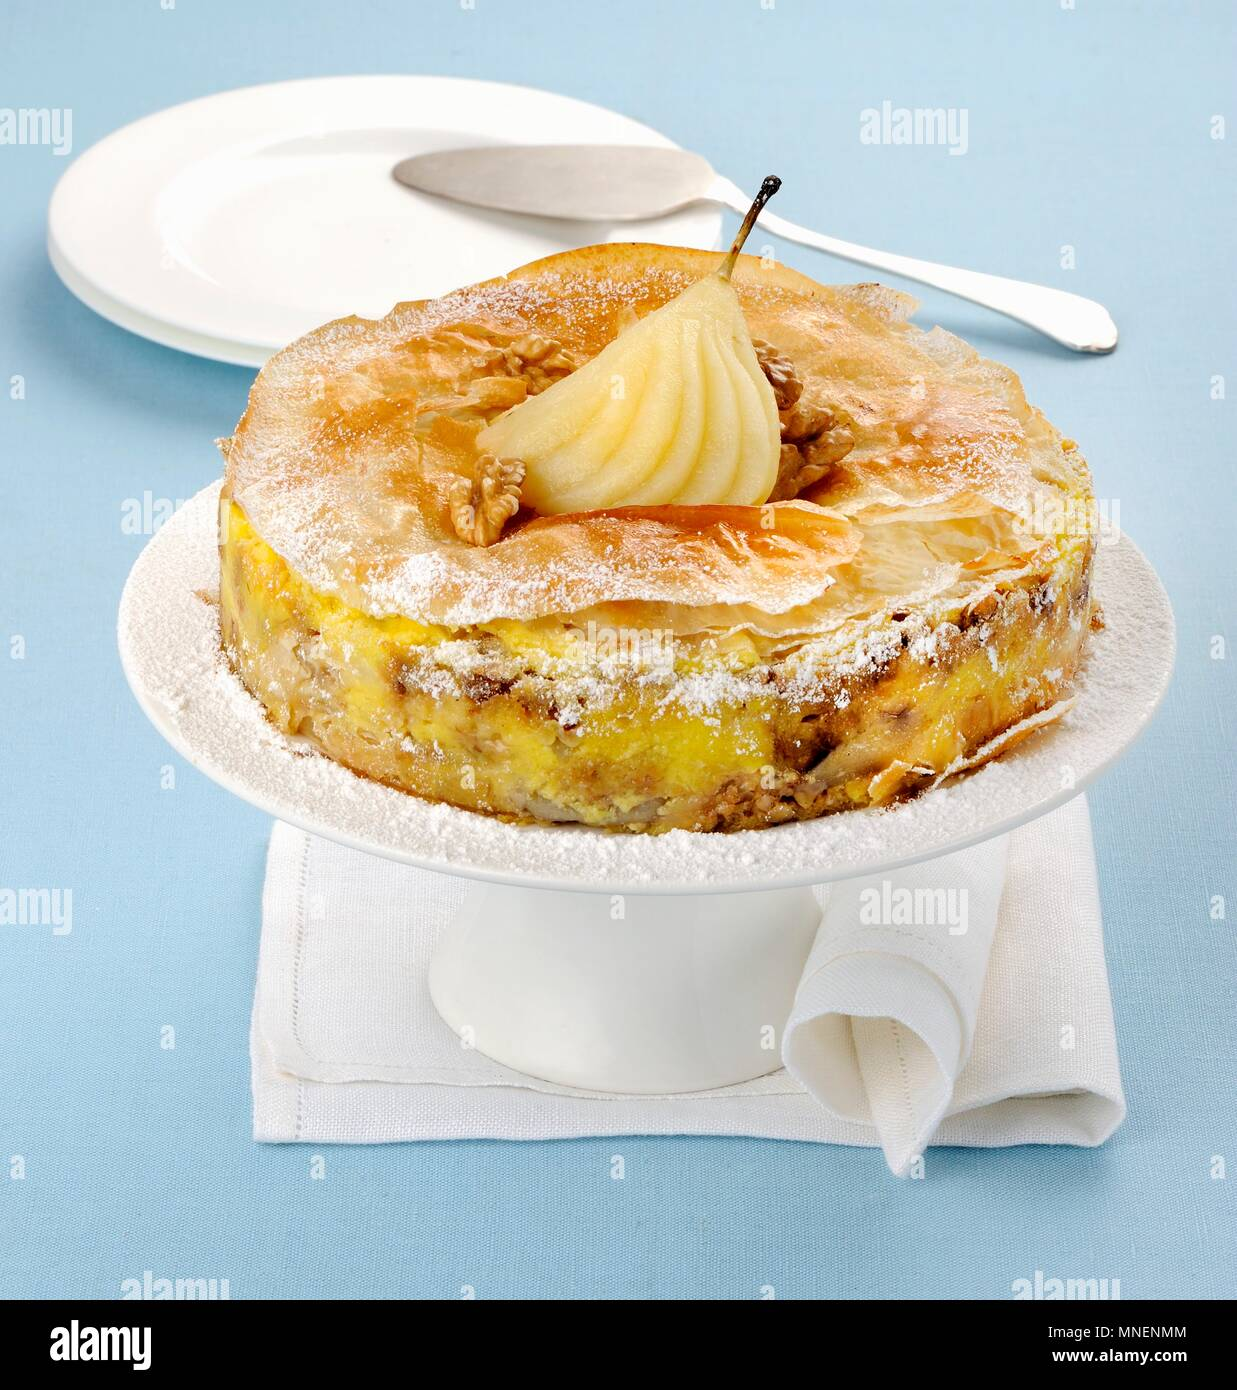 Pear tart with crispy filo pastry - Stock Image